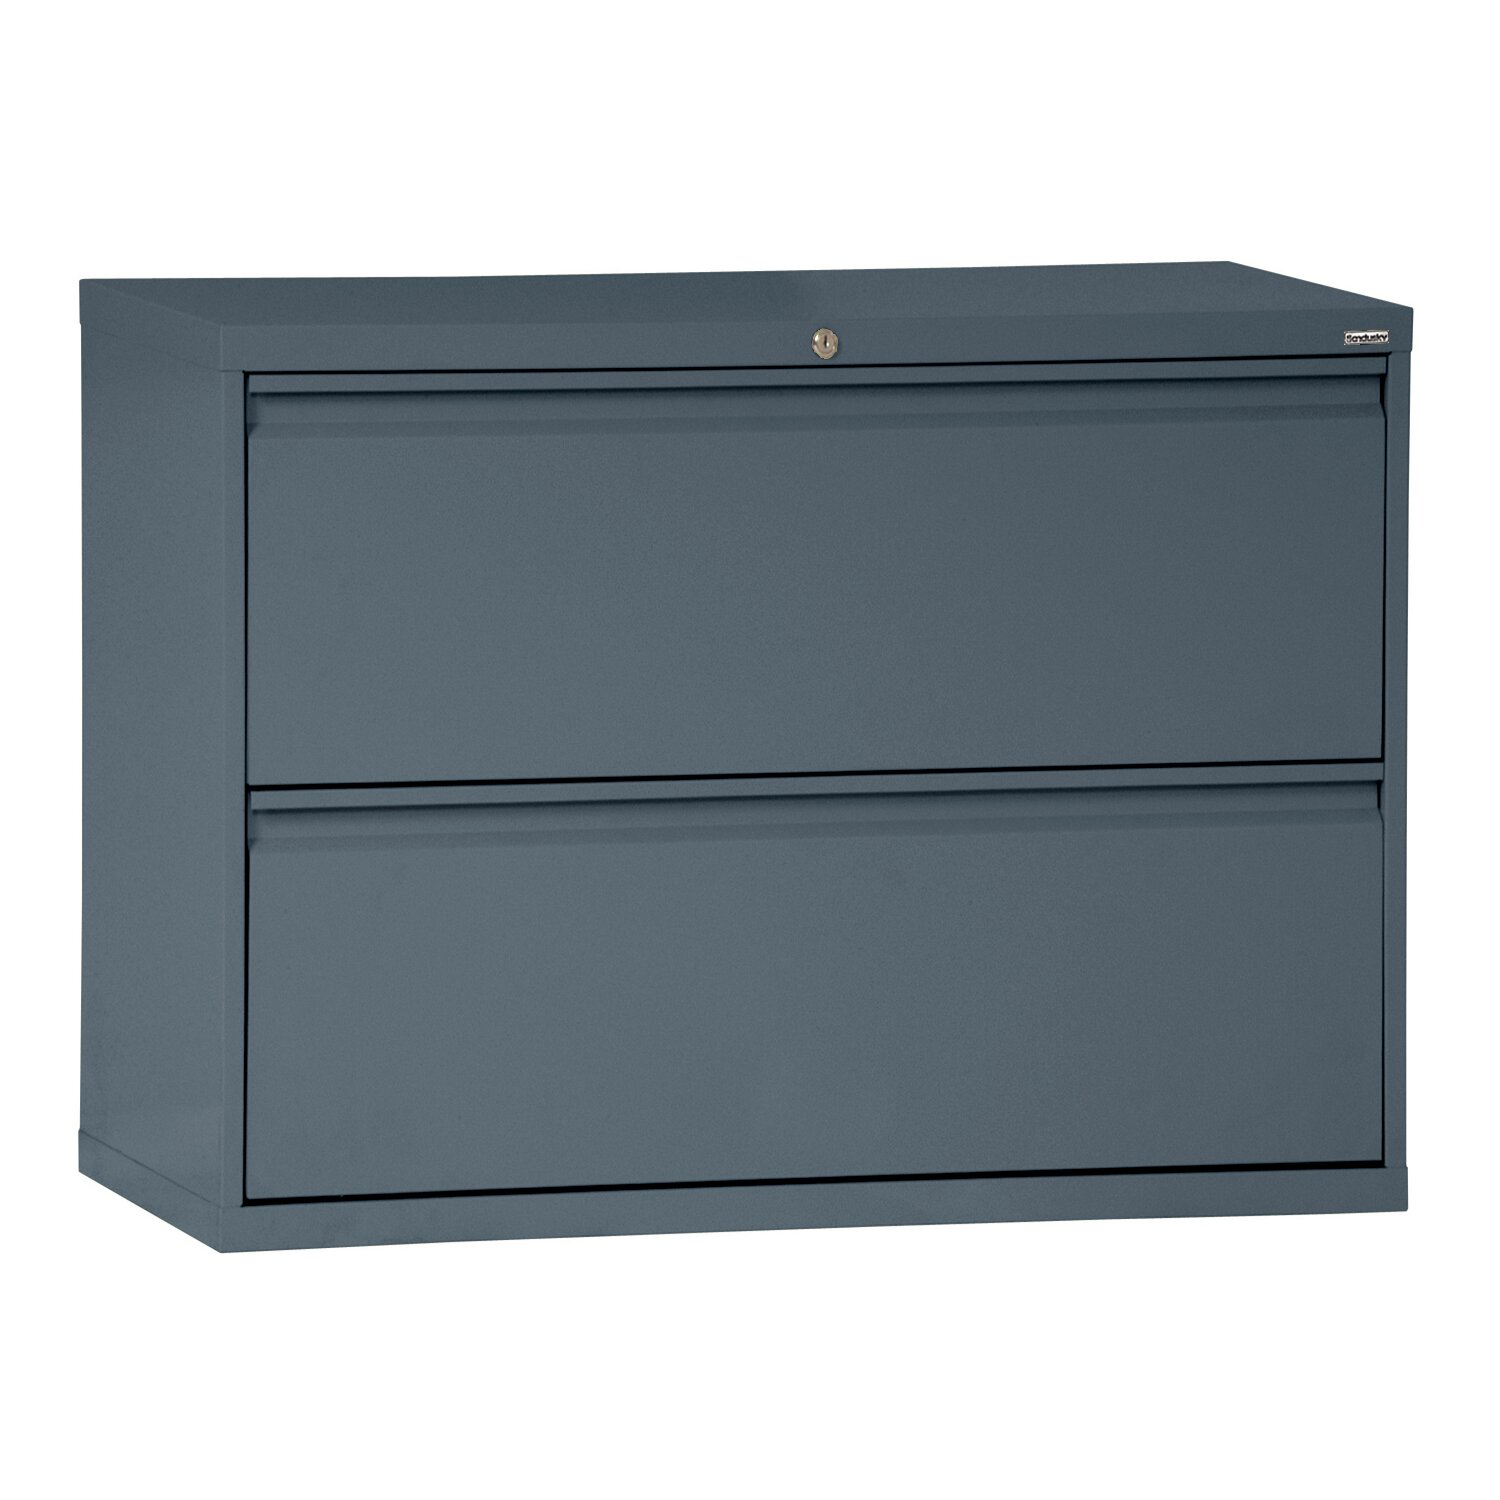 Horizontal Filing Cabinet Symple Stuff 2 Drawer Lateral Filing Cabinet Reviews Wayfair